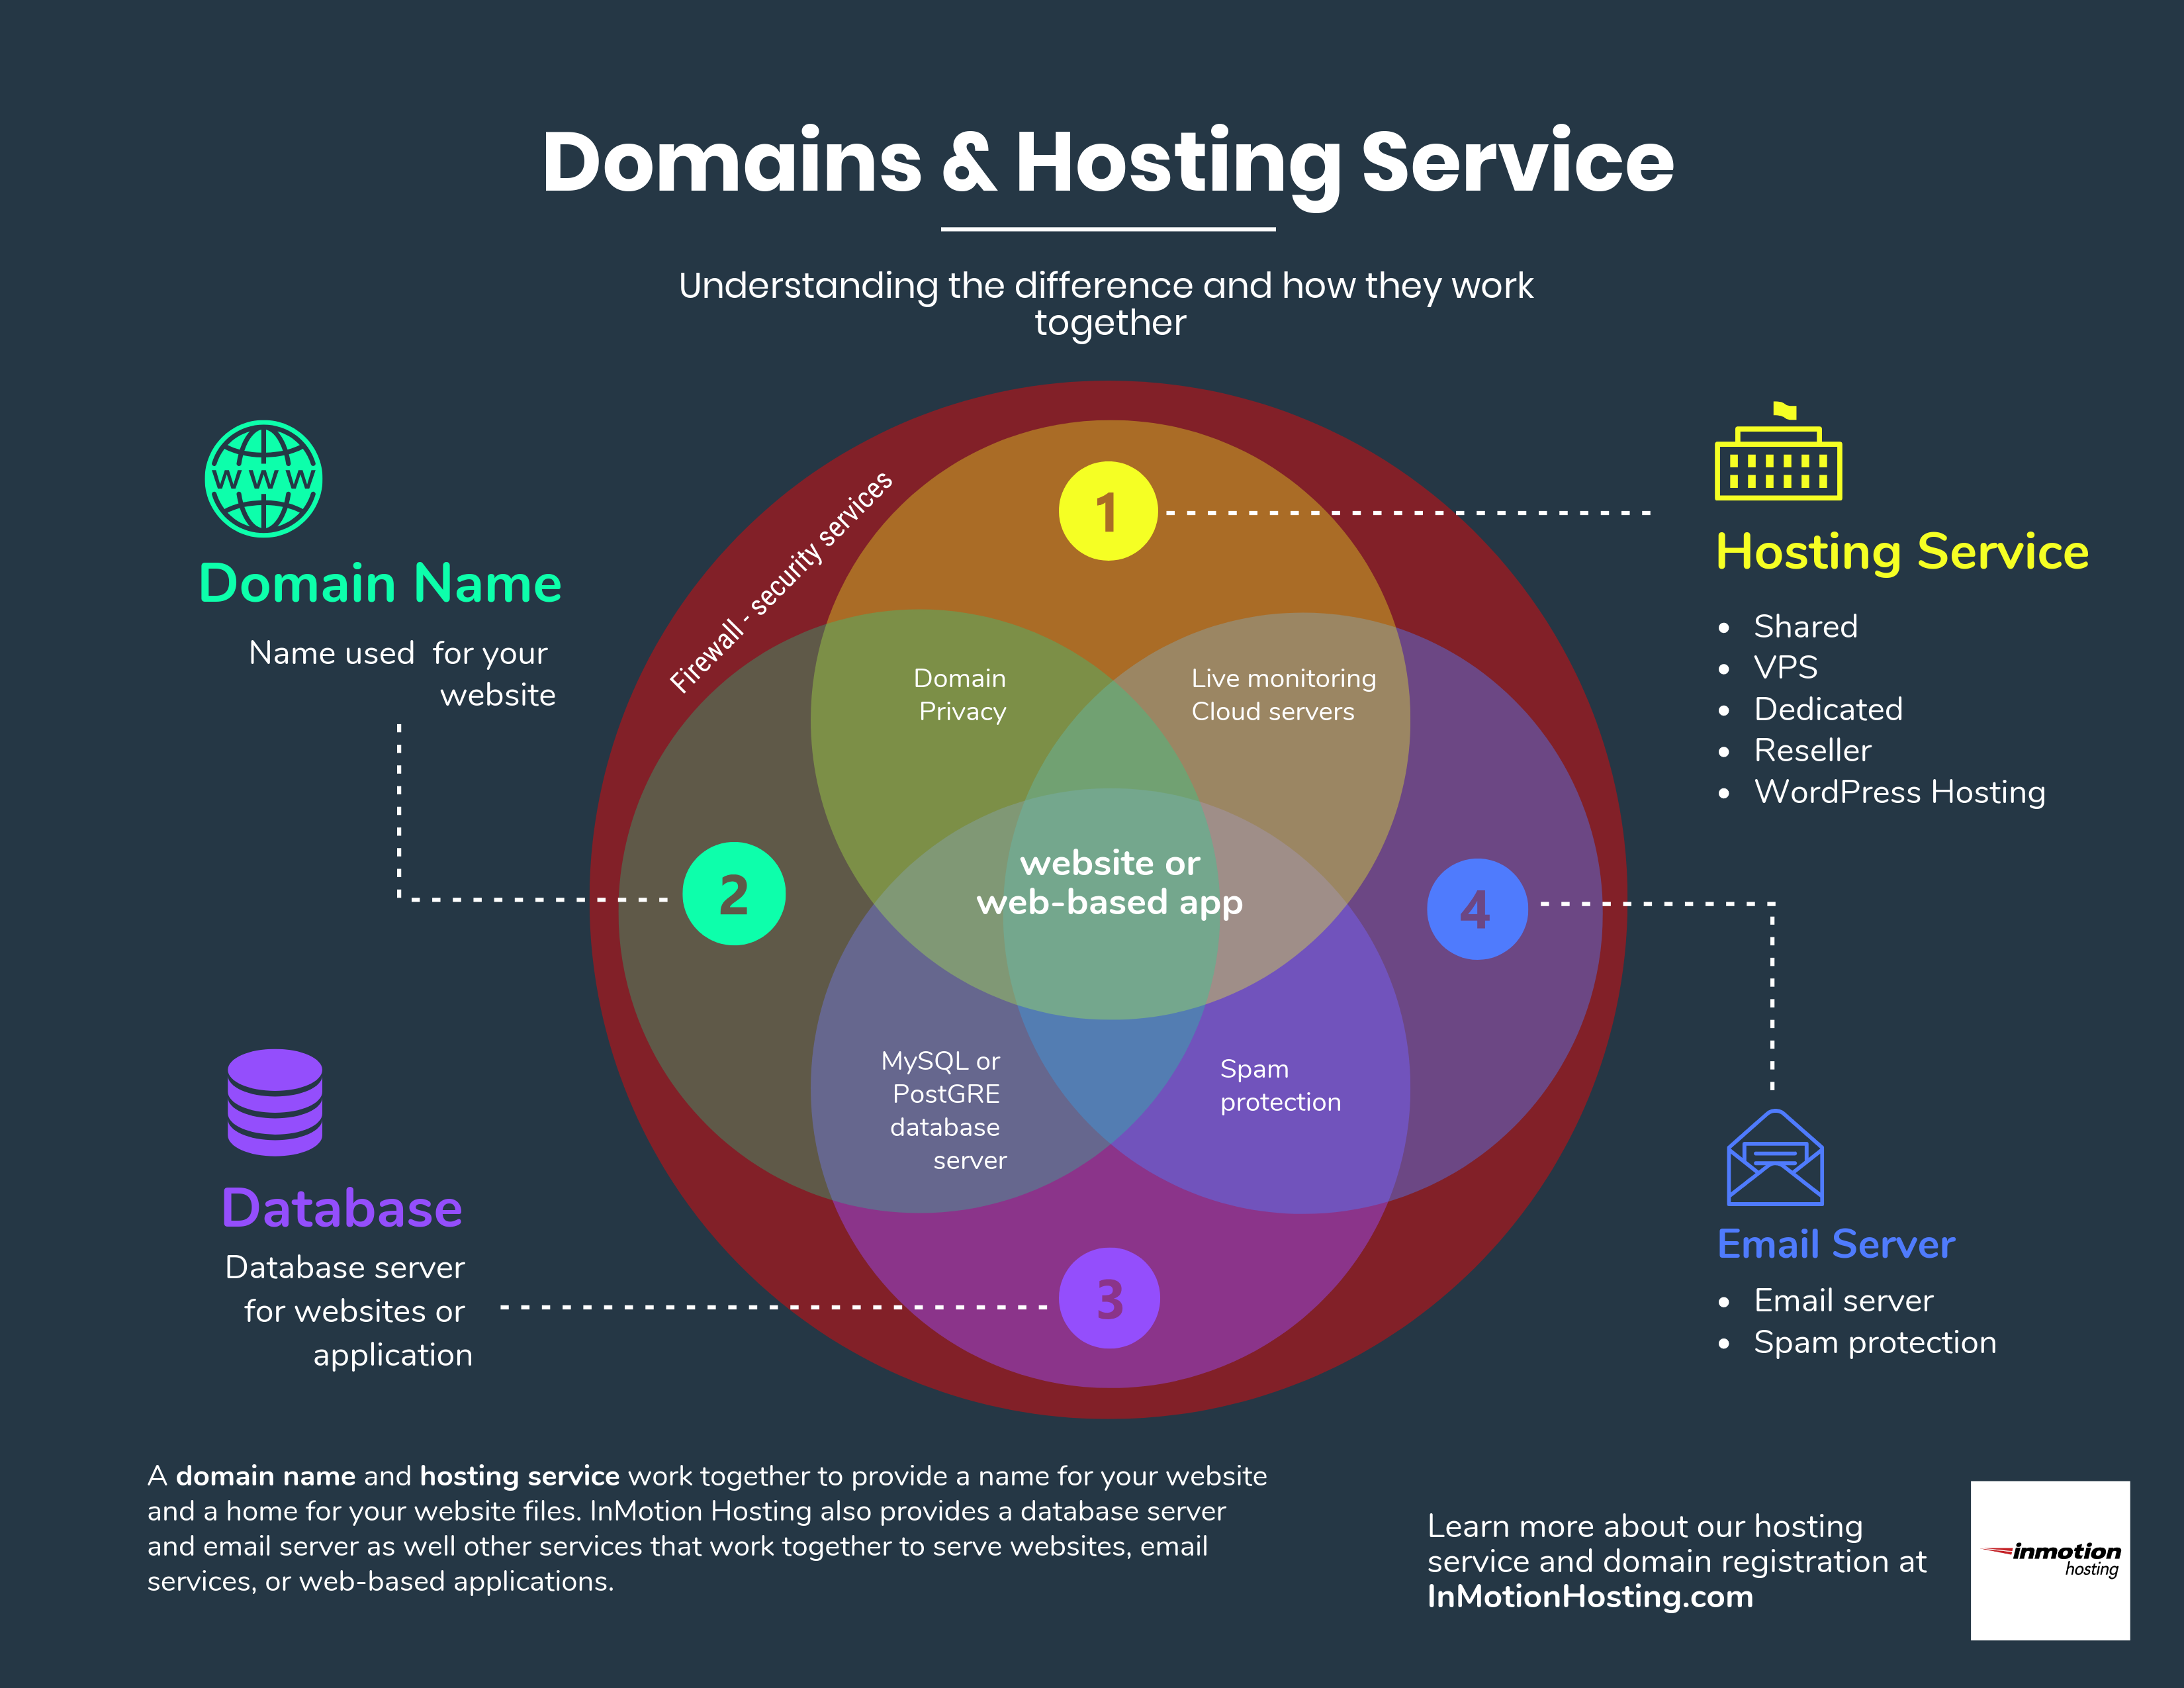 Understanding a Domain and Hosting Service   InMotion ...